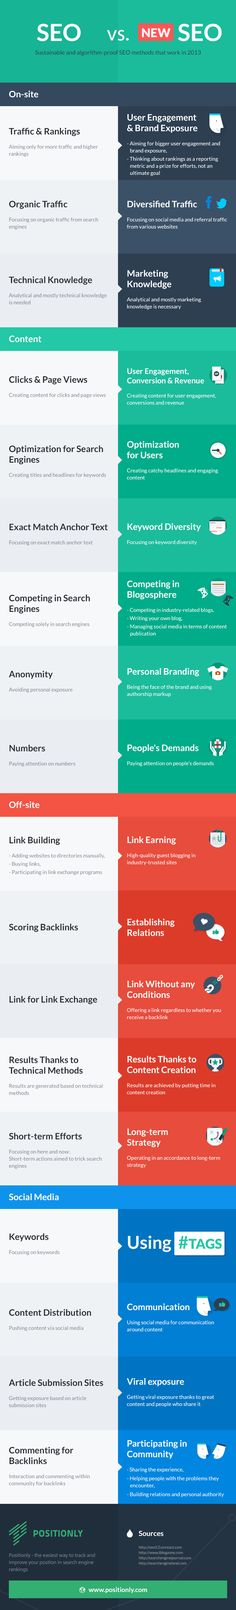 SEO vs. New #SEO – Sustainable and Algorithm-Proof #SearchMarketing Methods That Work - #infographic